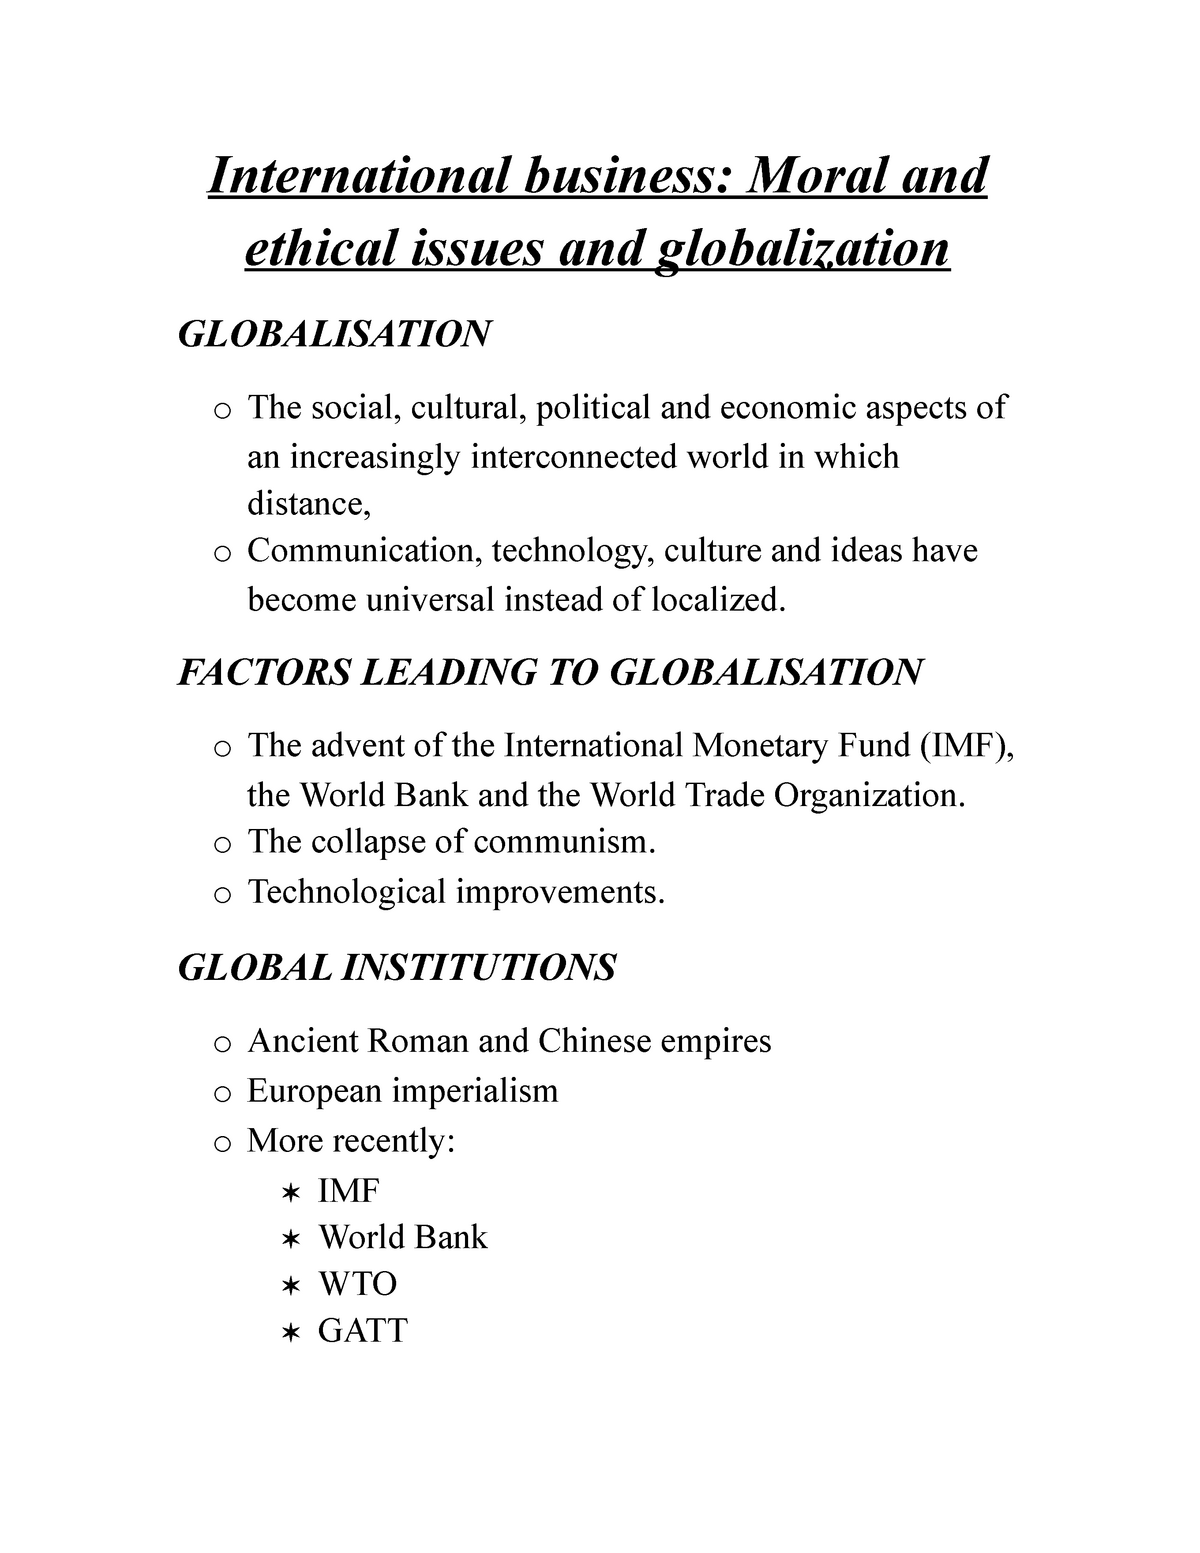 International business- Moral and ethical issues and